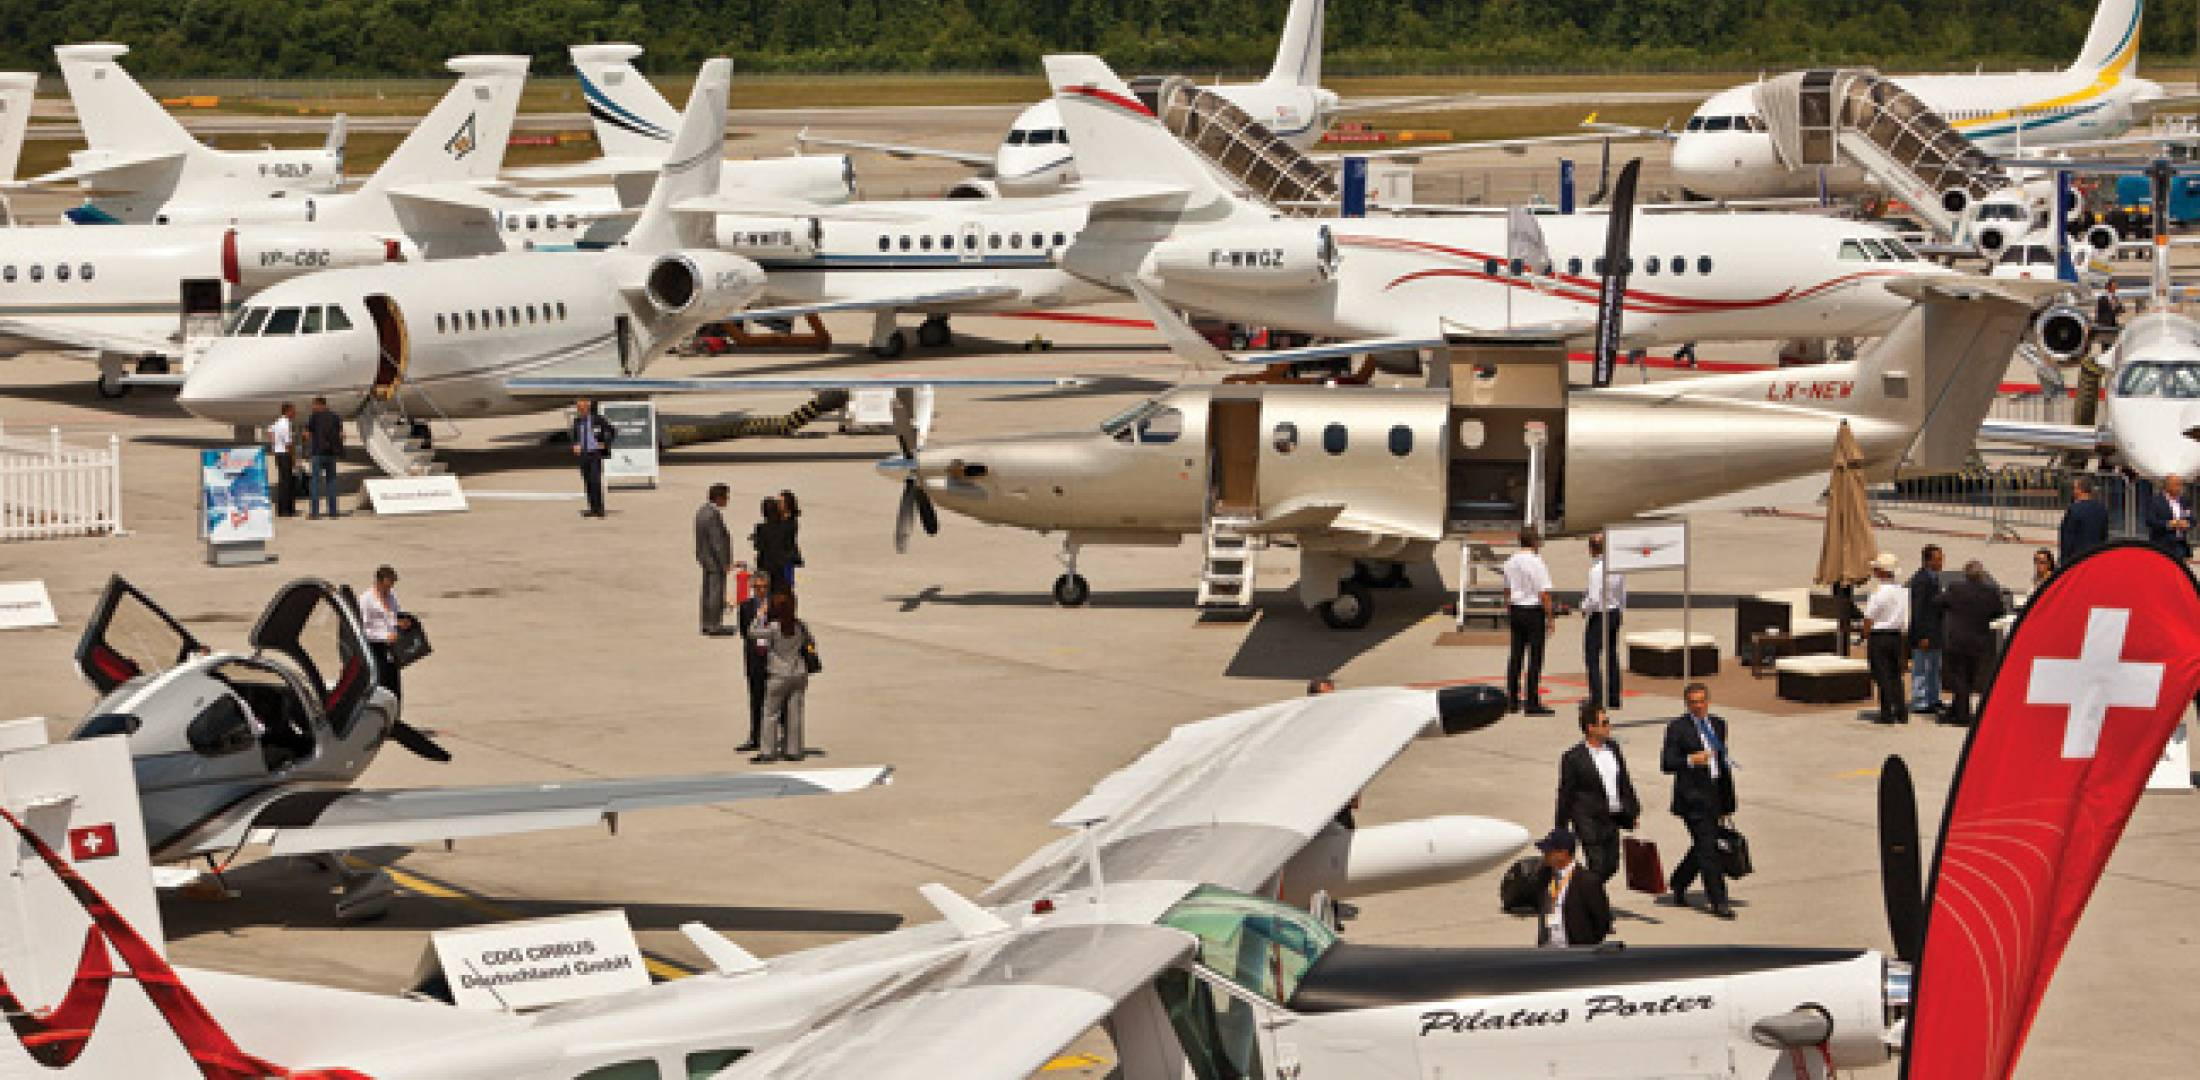 The 62 aircraft on static display at last year's Ebace contrasted starkly with the economic gloom, and organizers expect this year's show to have a similar turnout.